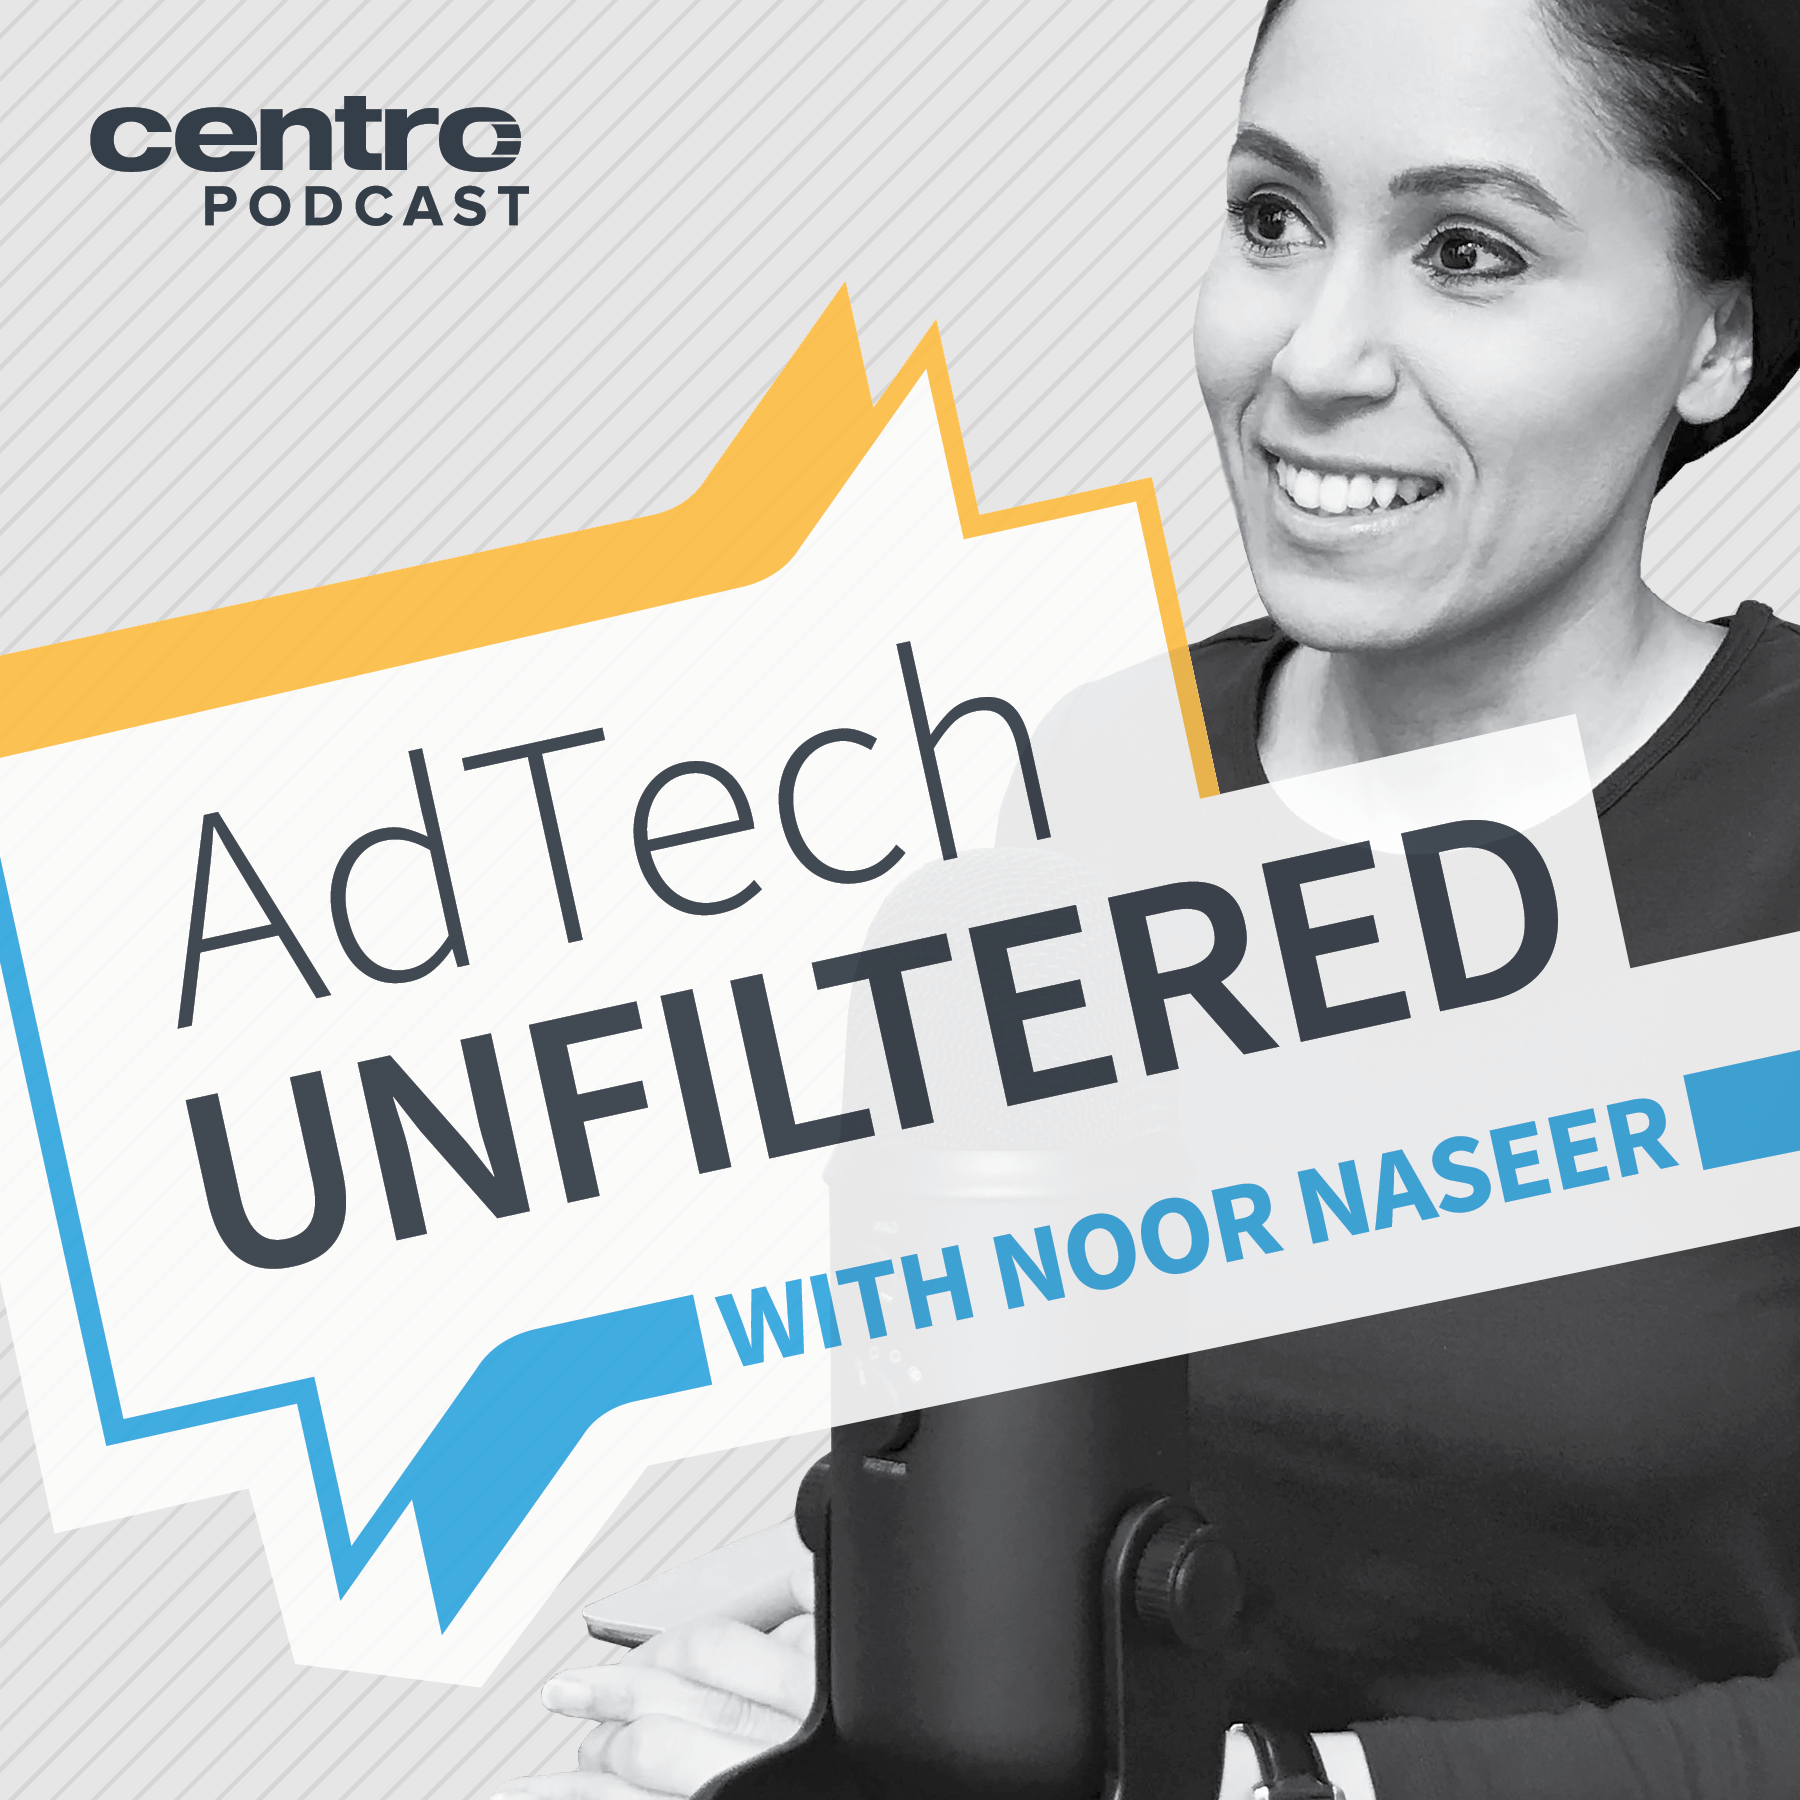 Adtech Unfiltered Teaser